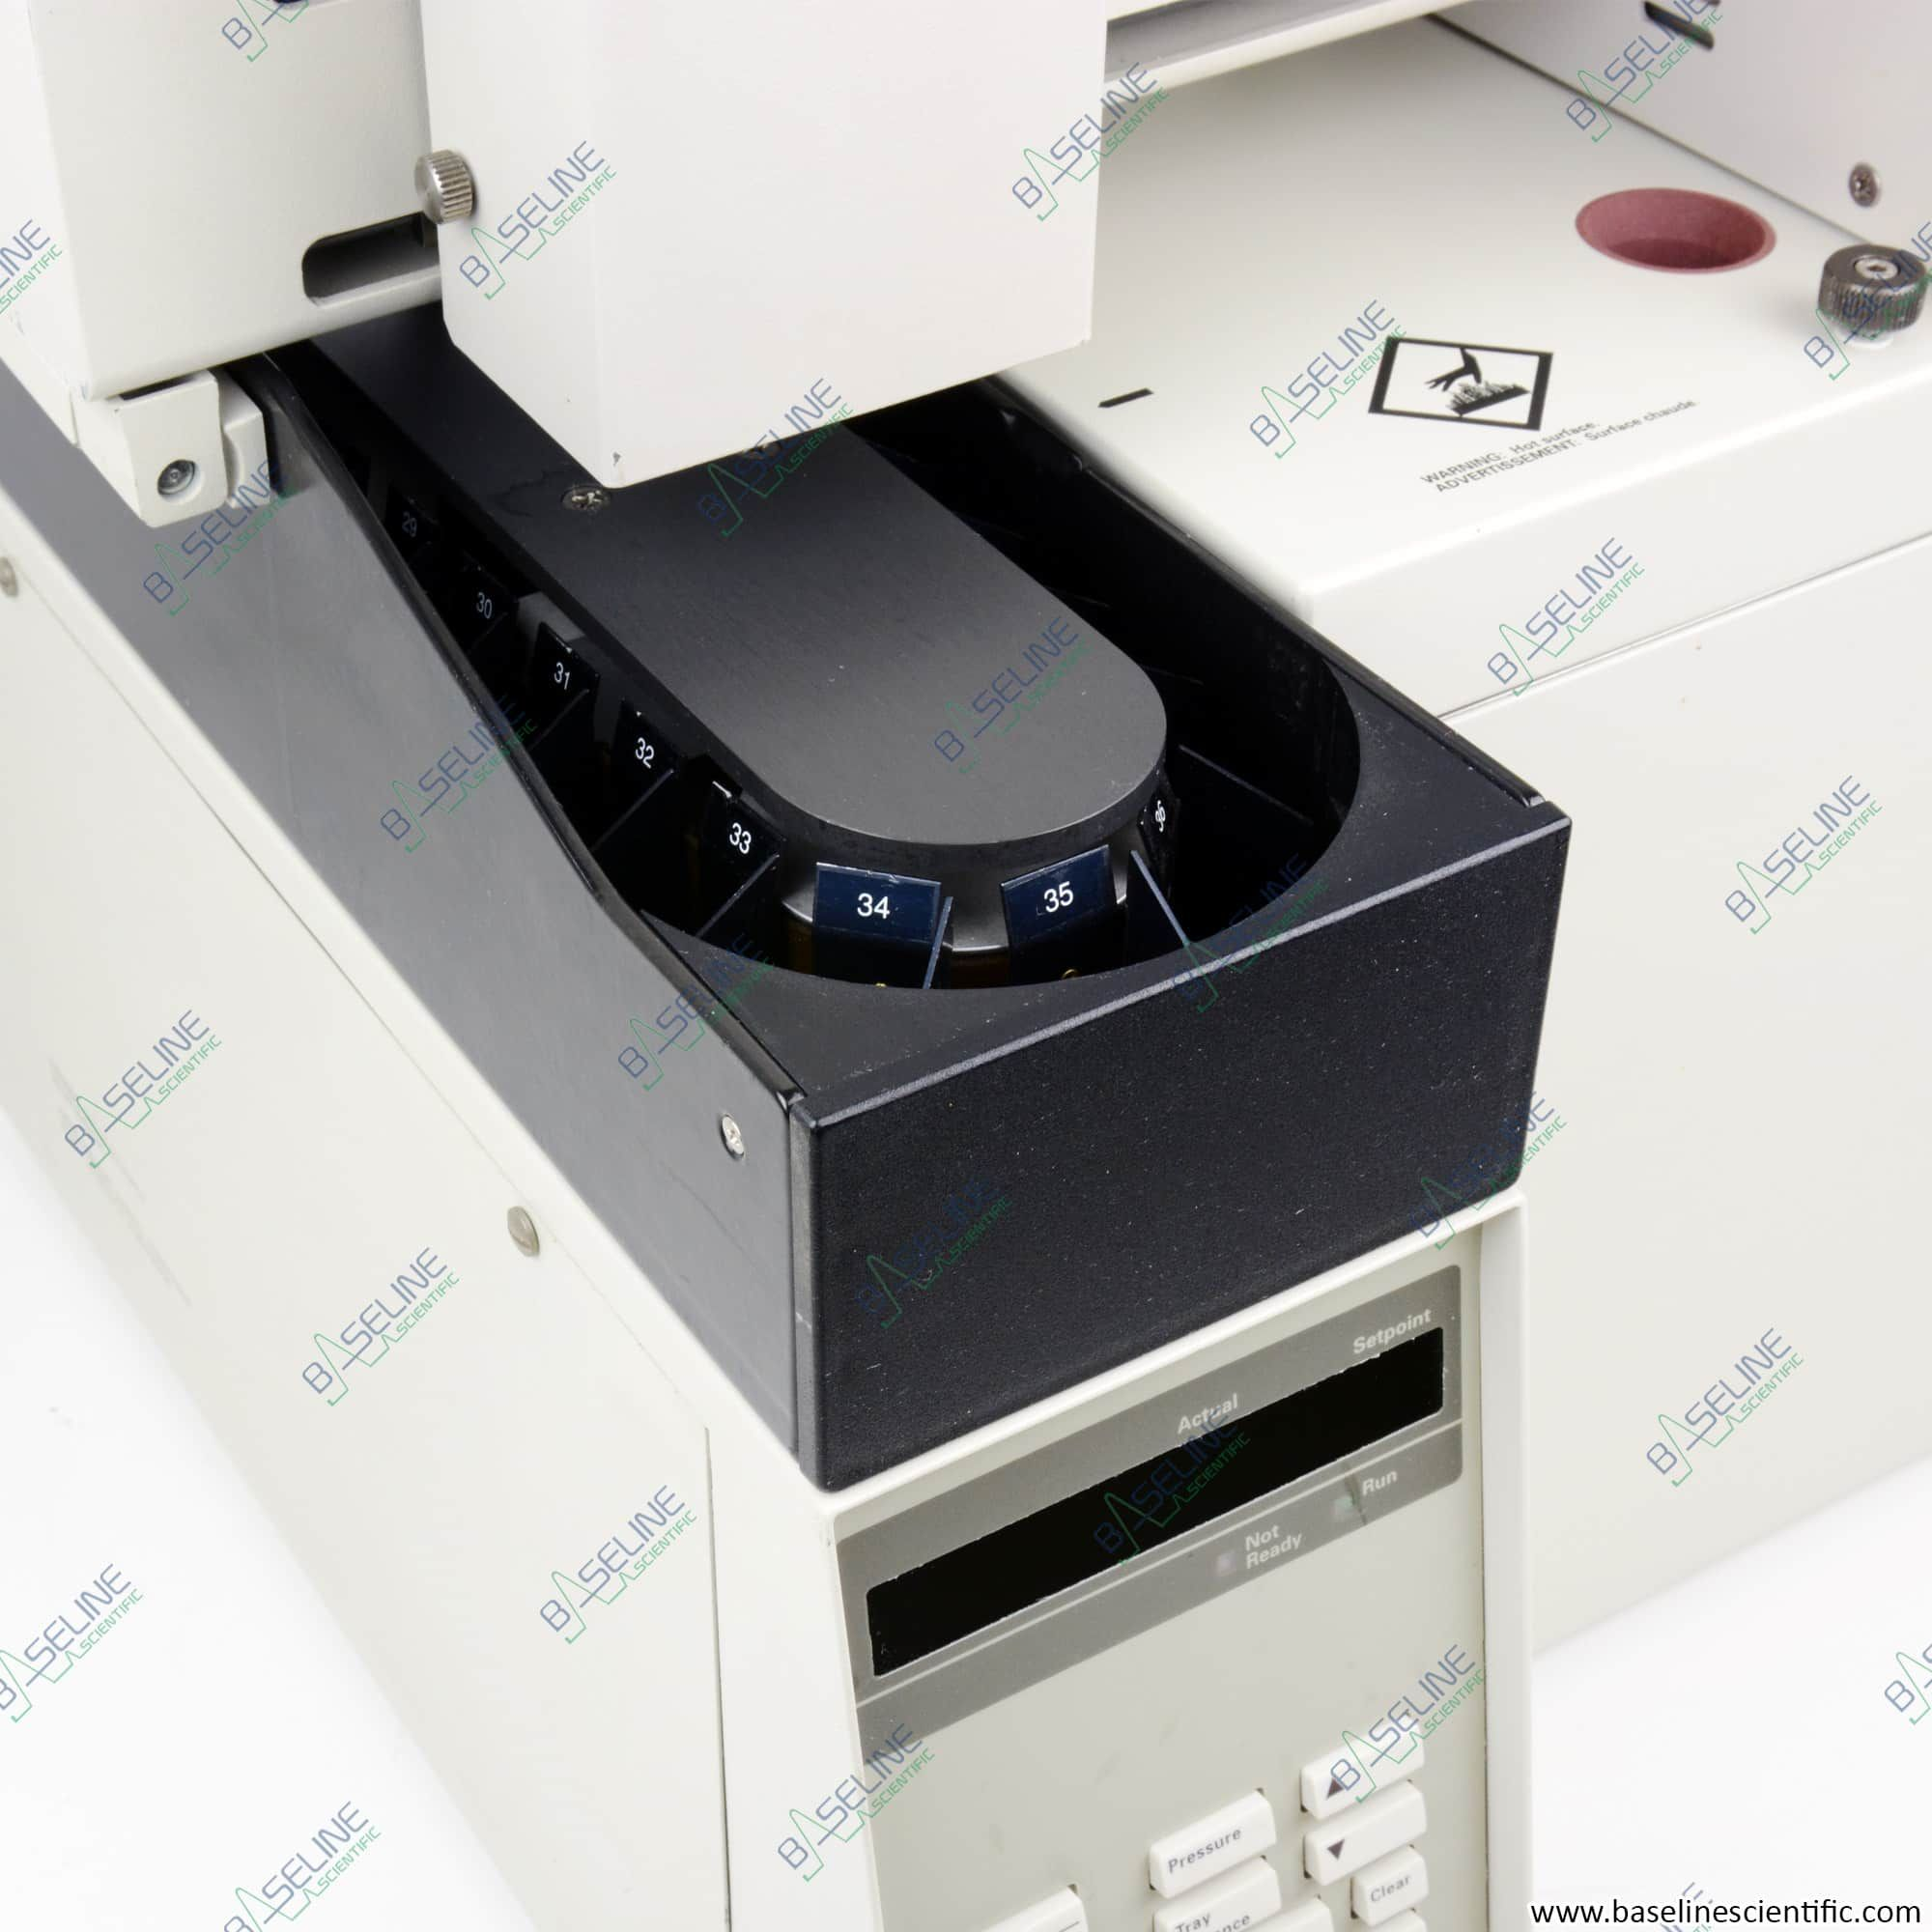 Refurbished Agilent HP 7694 G1289 Headspace Sampler with One Year Warranty